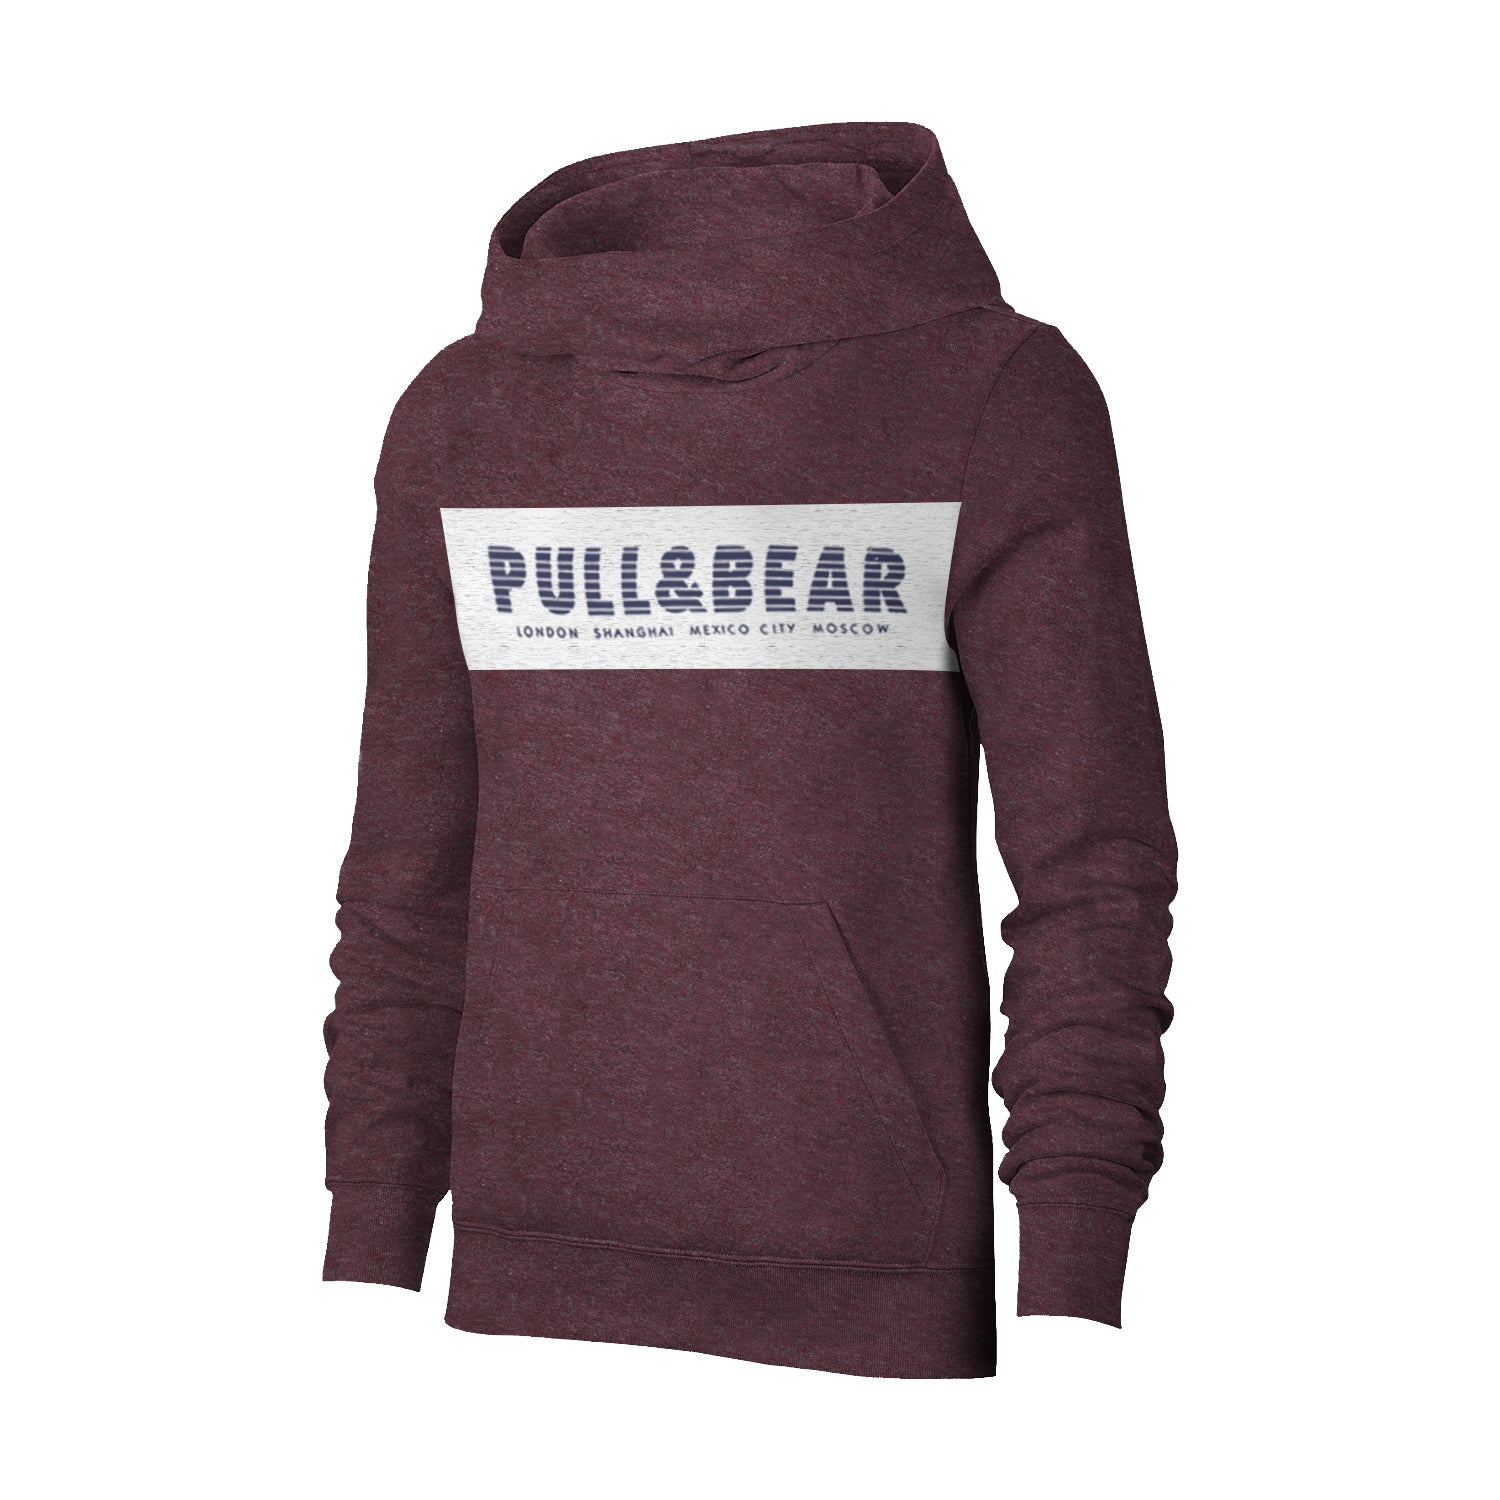 P&B Fleece Pullover Hoodie For Men-Burgundy  Melange with Off White Panel-BE13354